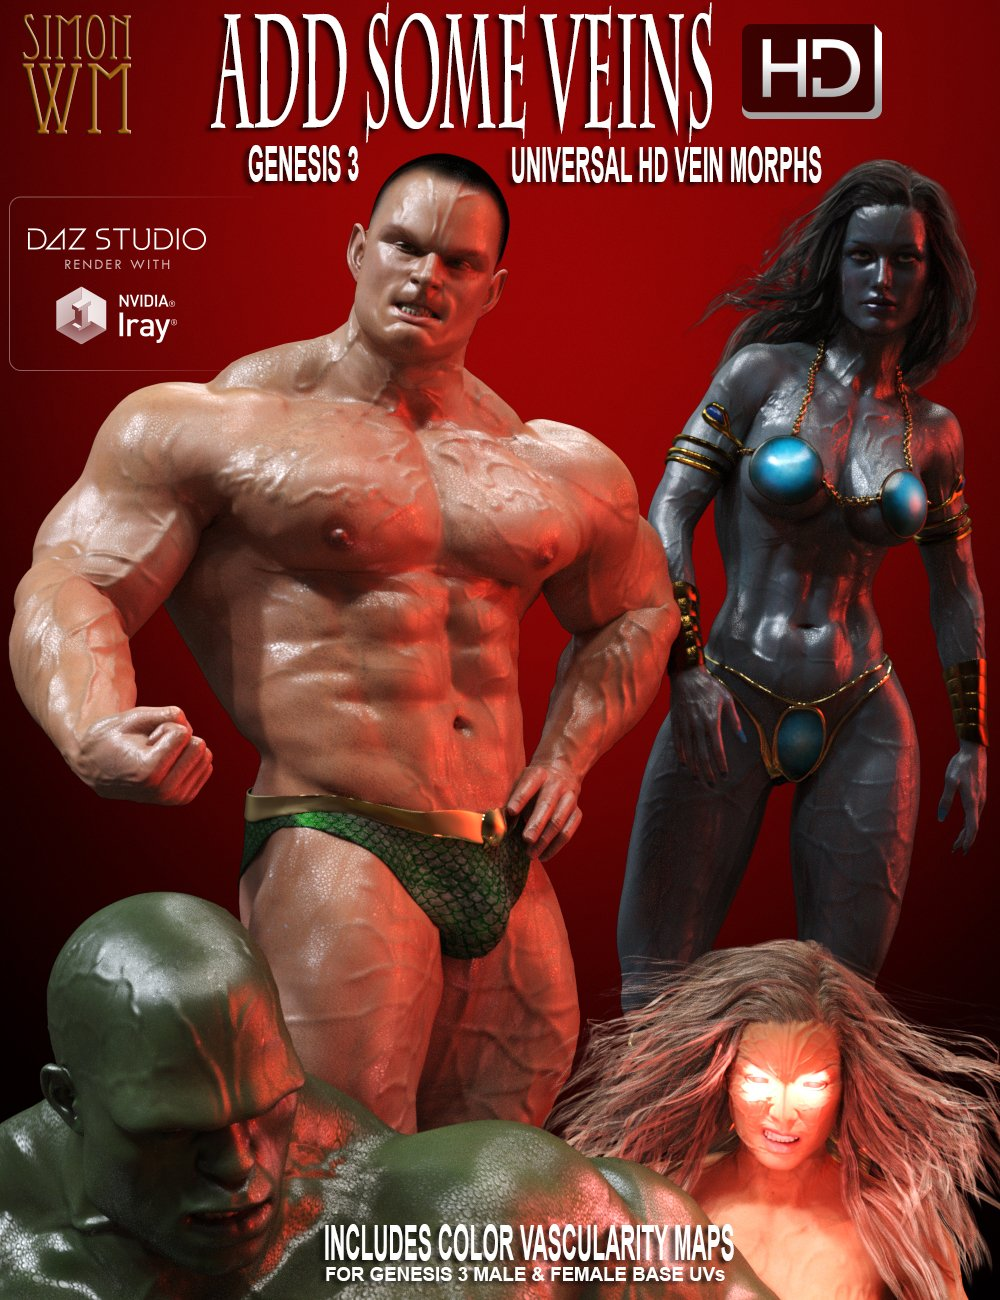 Add Some Veins HD for Genesis 3 by: SimonWM, 3D Models by Daz 3D